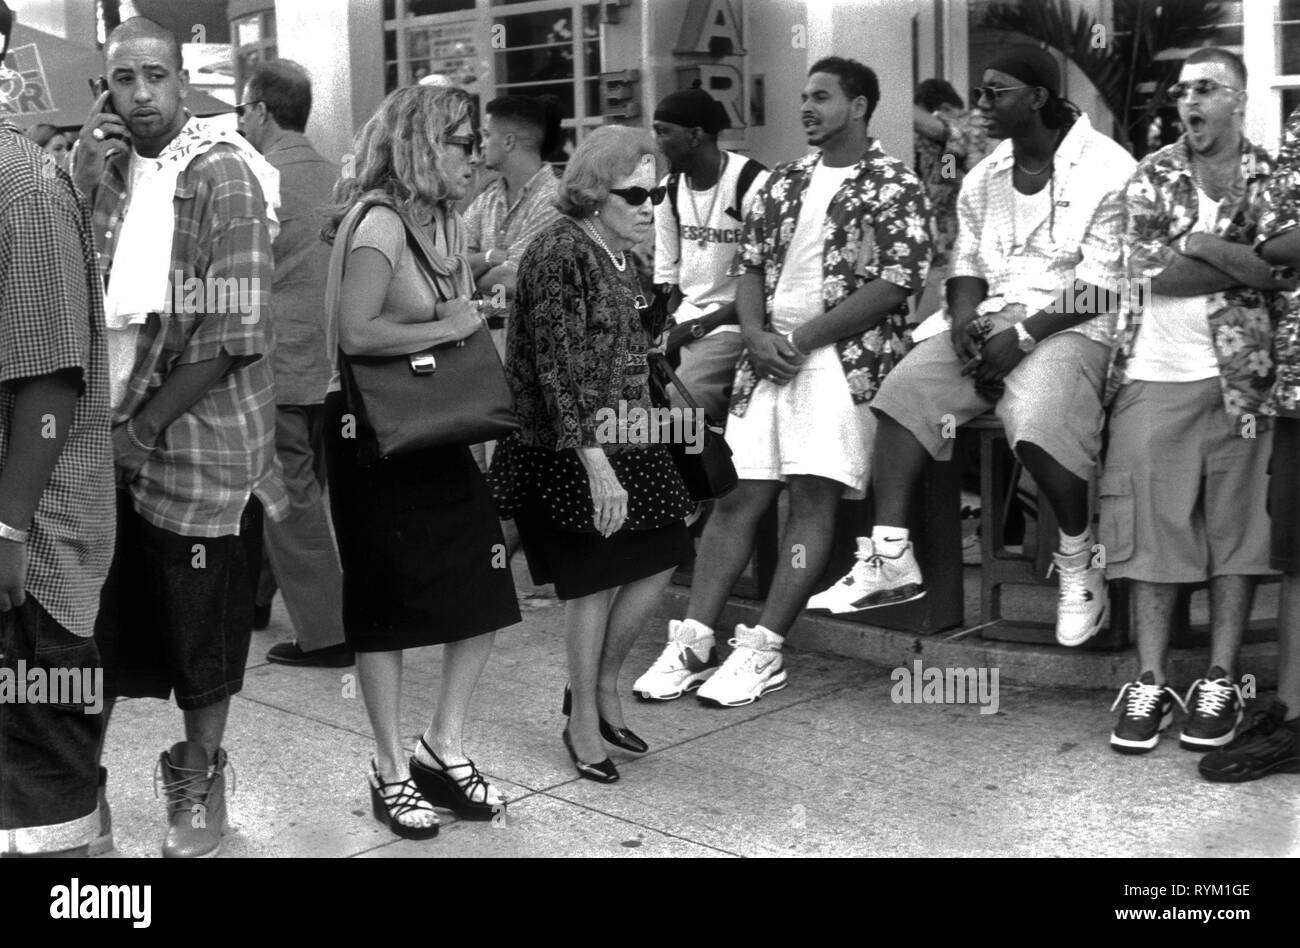 Two stressed looking business women push through a crowd of young men hanging out South Beach Miami Florida USA  1999 HOMER SYKES Stock Photo